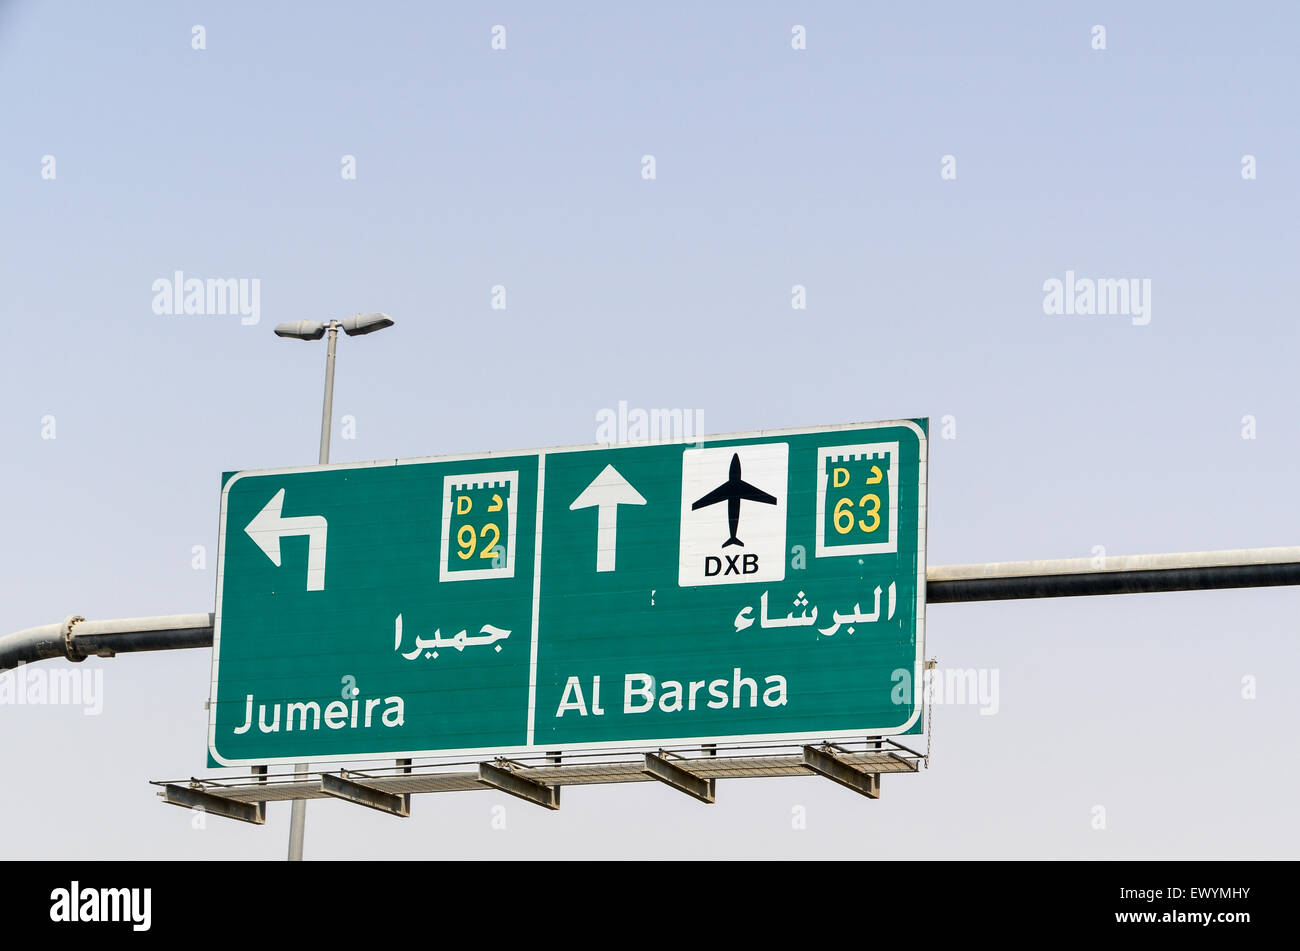 Road sign in Dubai, UAE, indicating Jumeira and Al Barsha, with the DXB airport logo - Stock Image